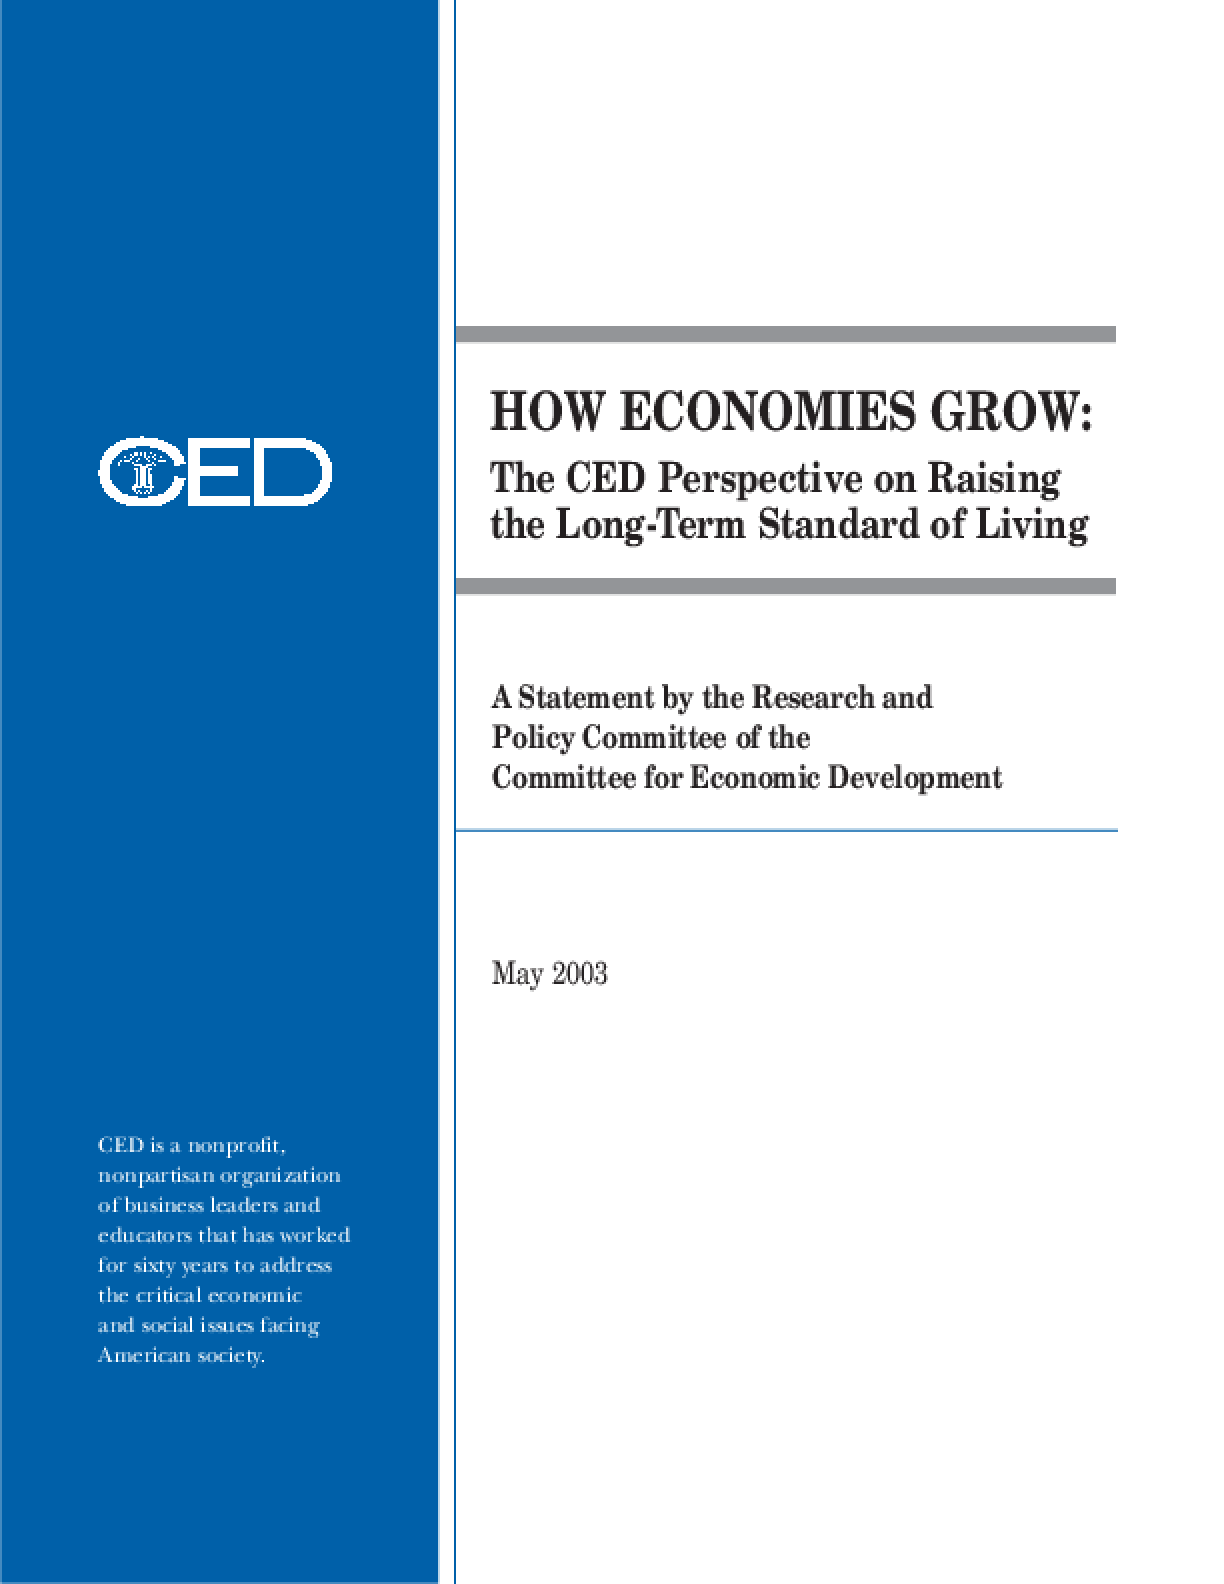 How Economies Grow: The CED Perspective on Raising the Long-Term Standard of Living